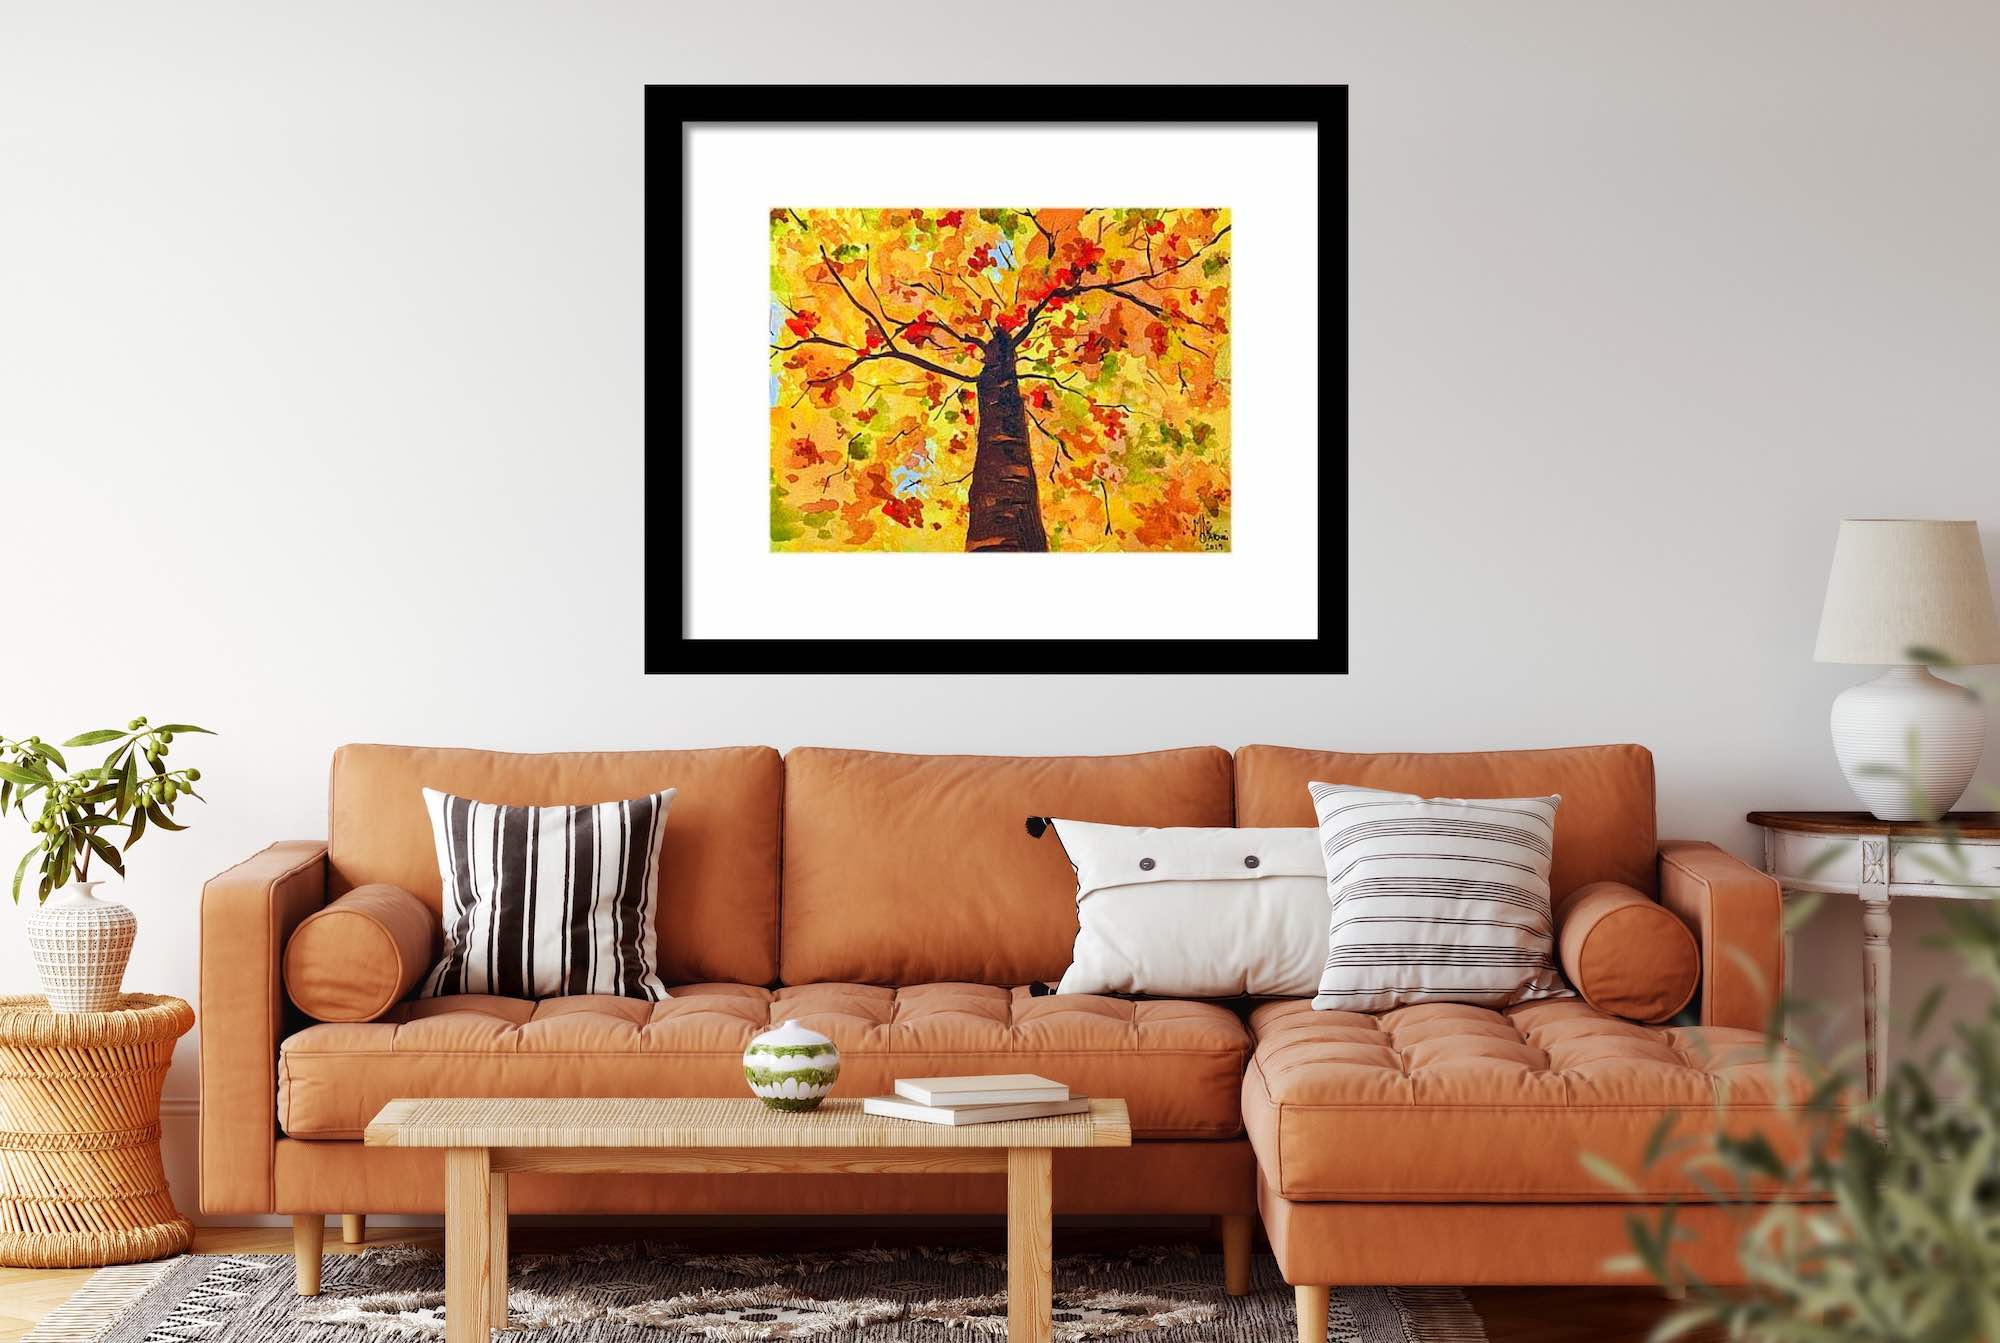 Watercolor painting - Autumn Leaves by Monika Arturi